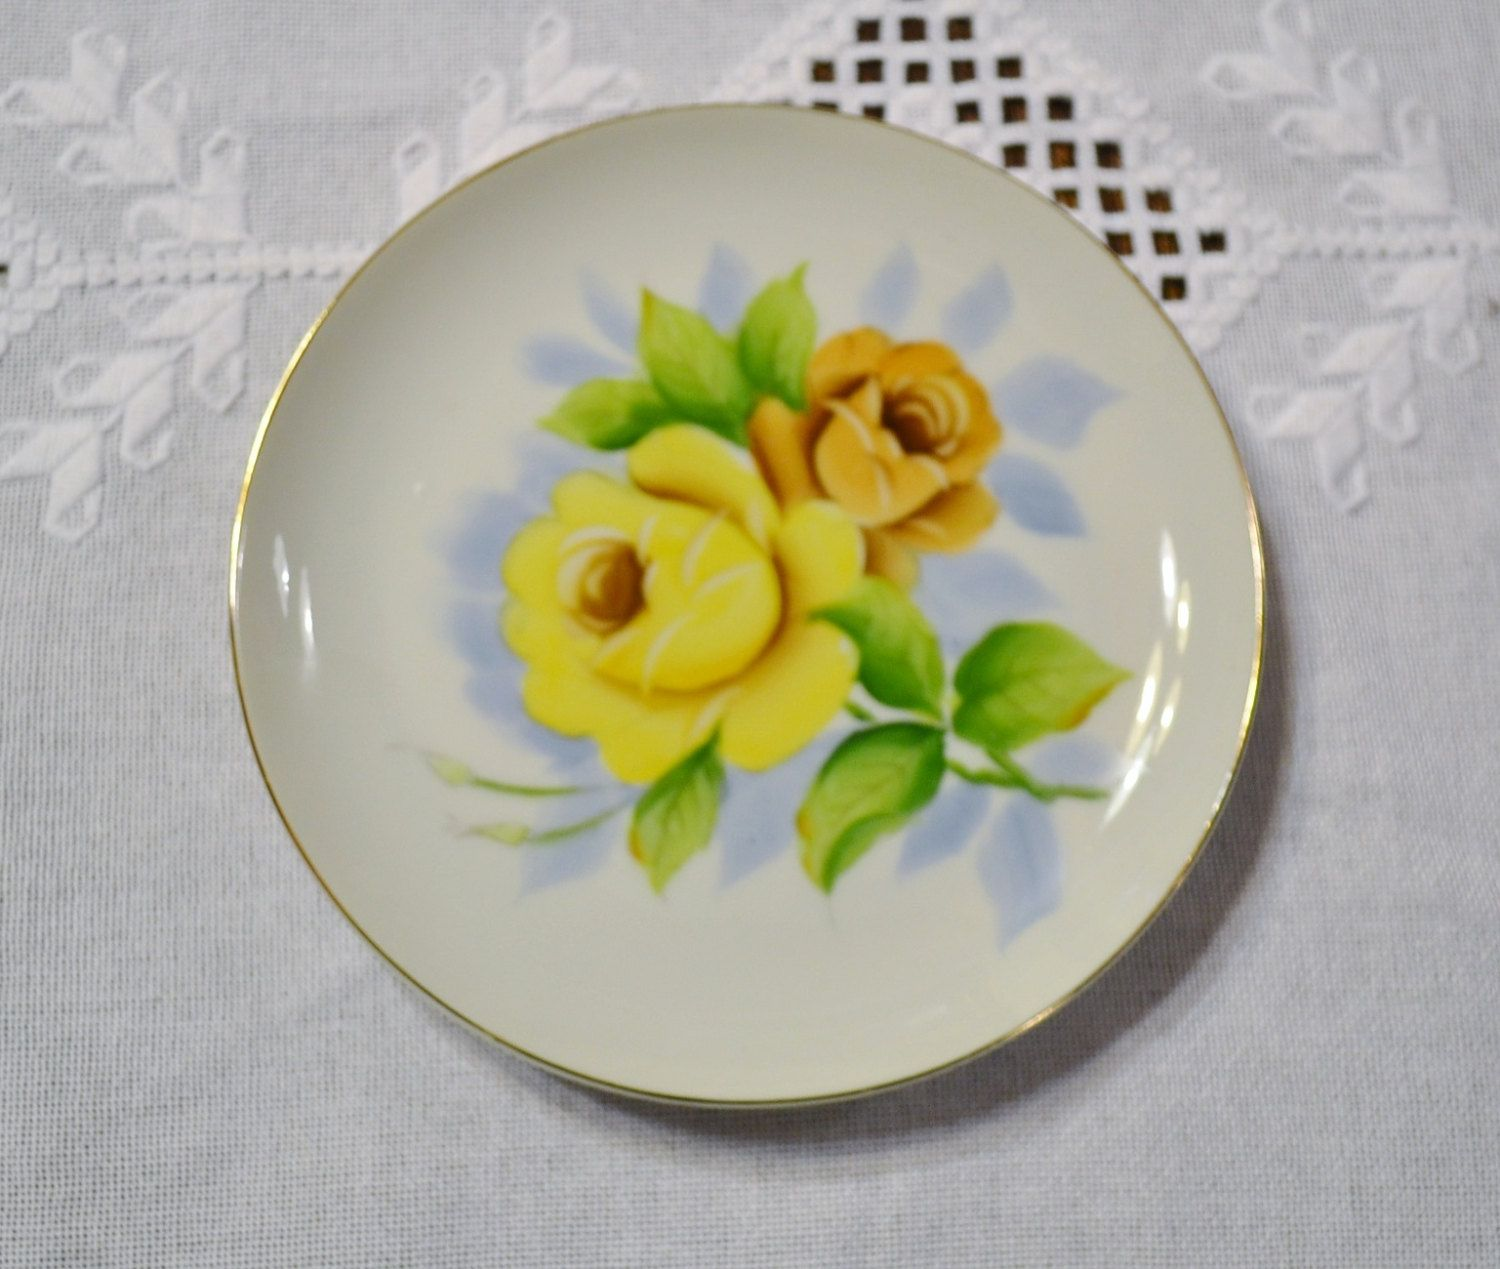 Vintage Decorative Plate Yellow Green Rose Floral Gold Rim Wall ...